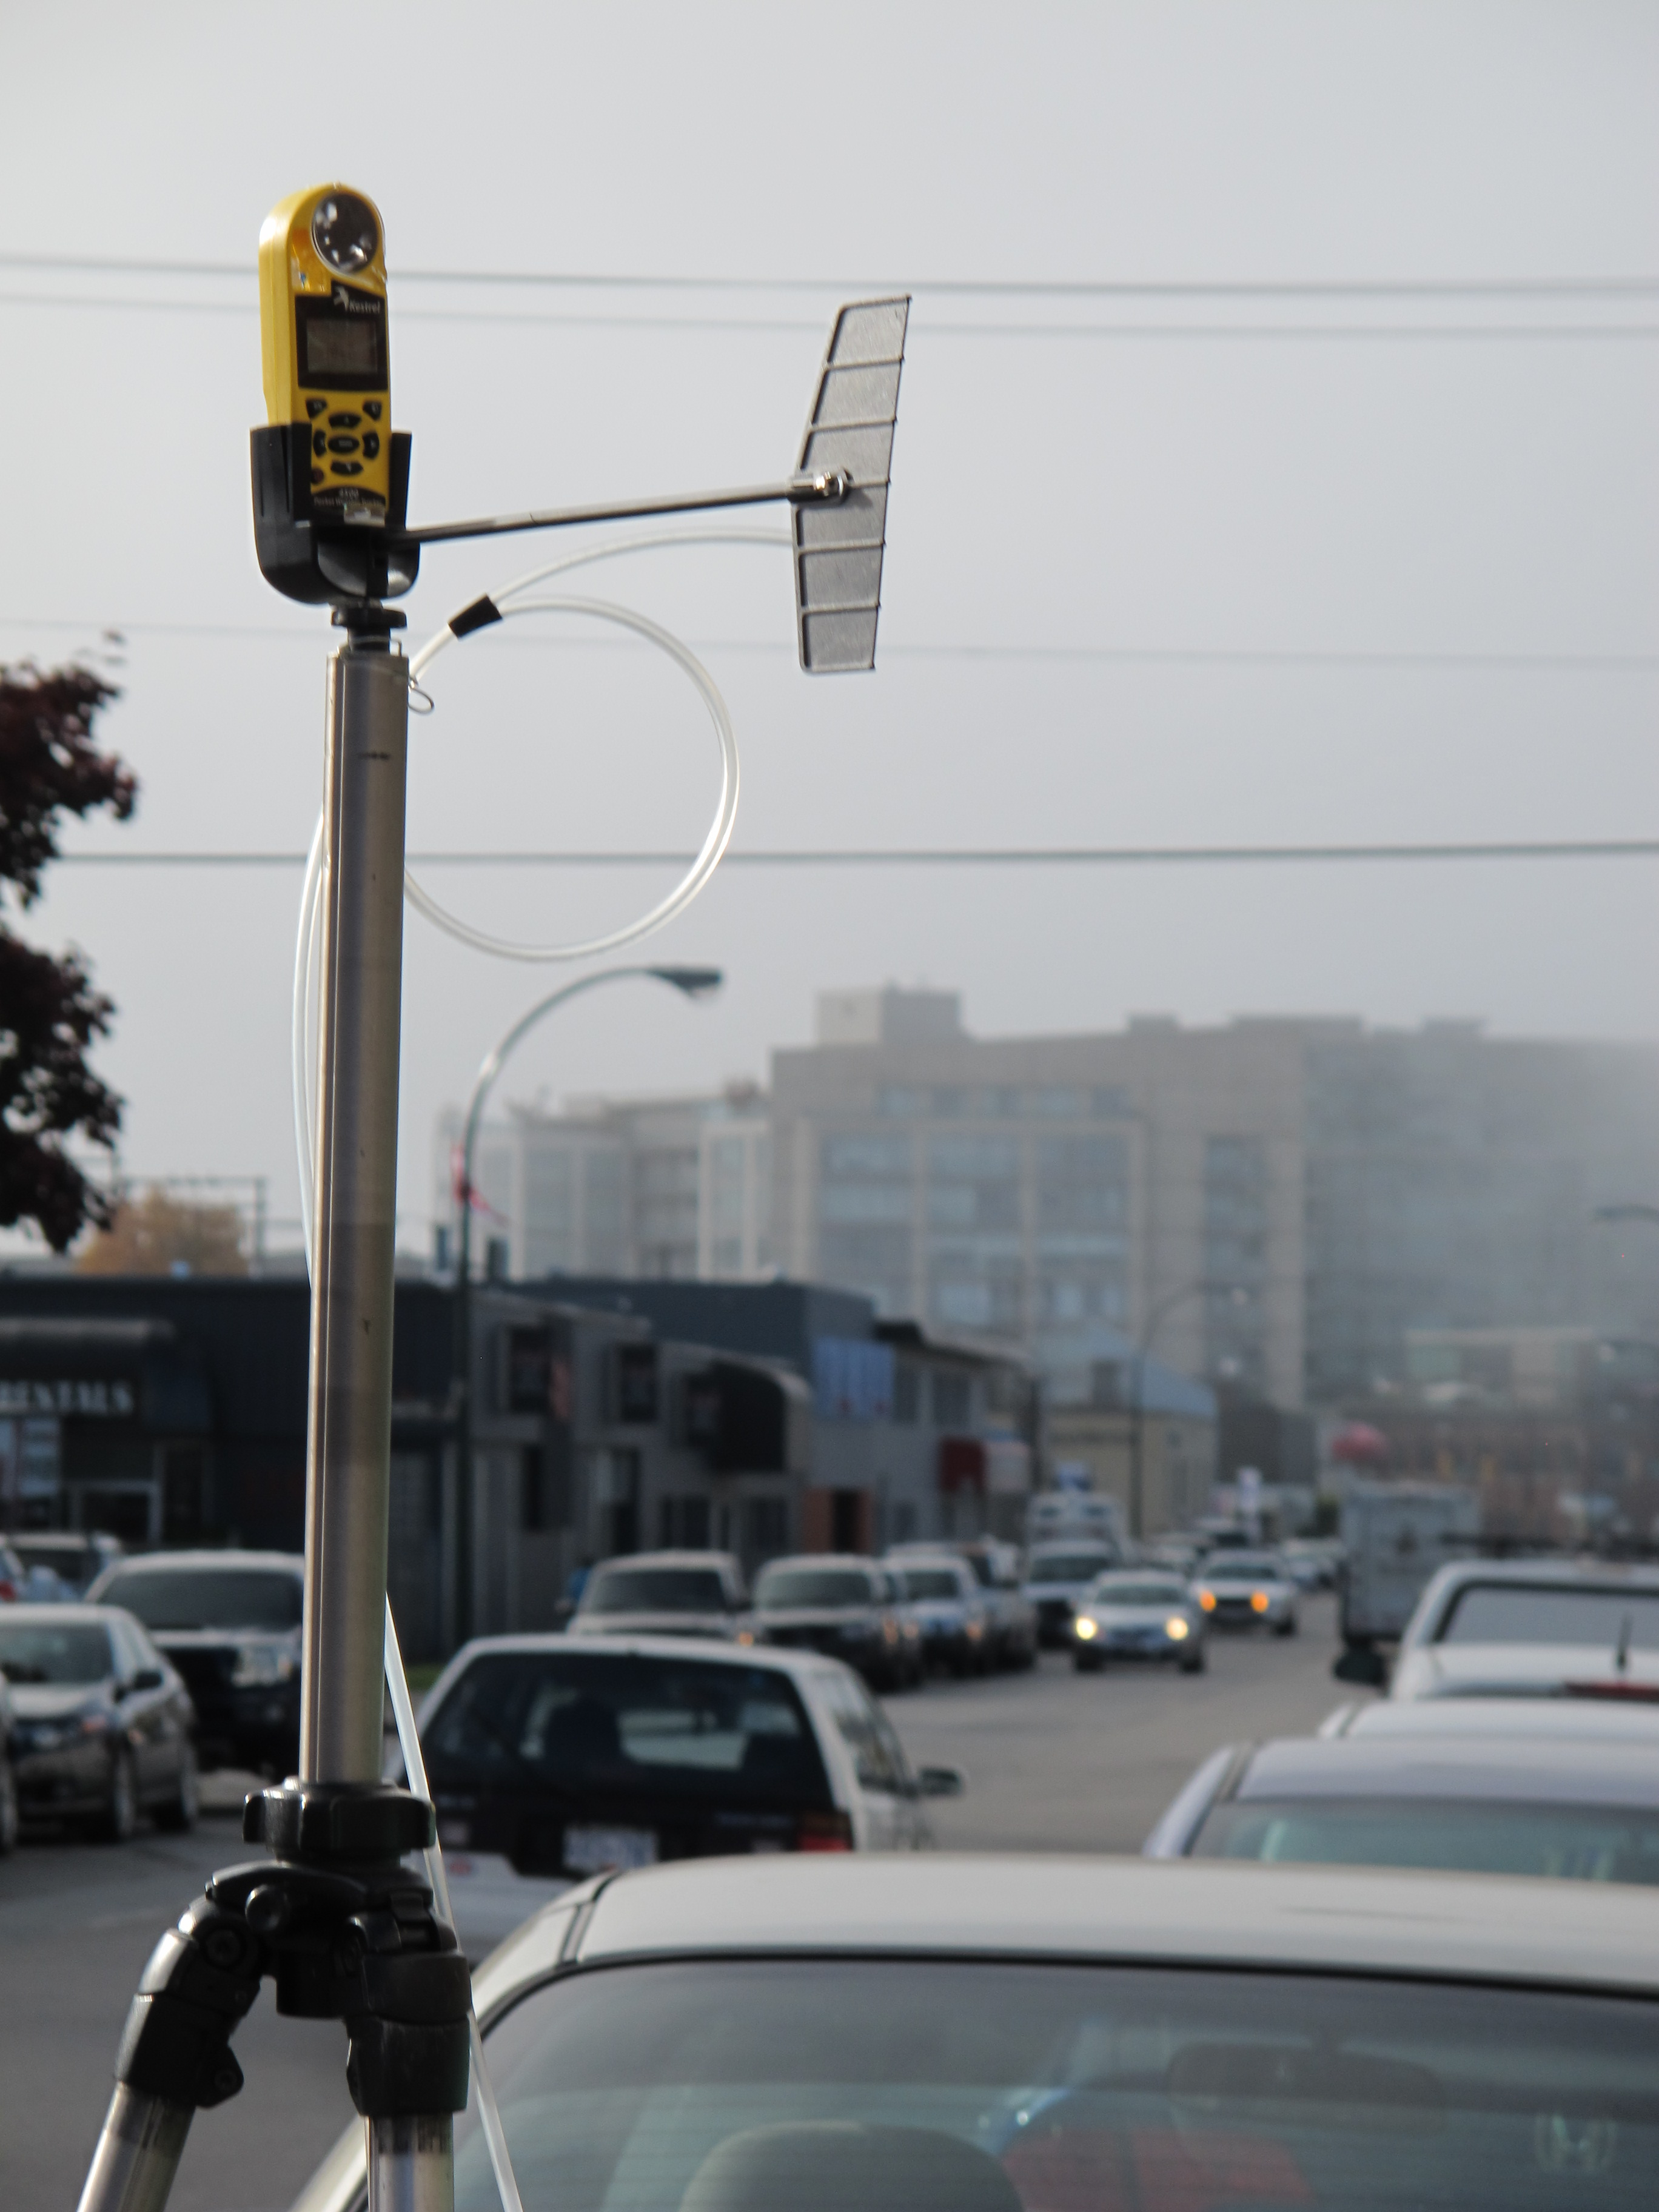 CO2 and Methane Sampling in the city of Vancouver